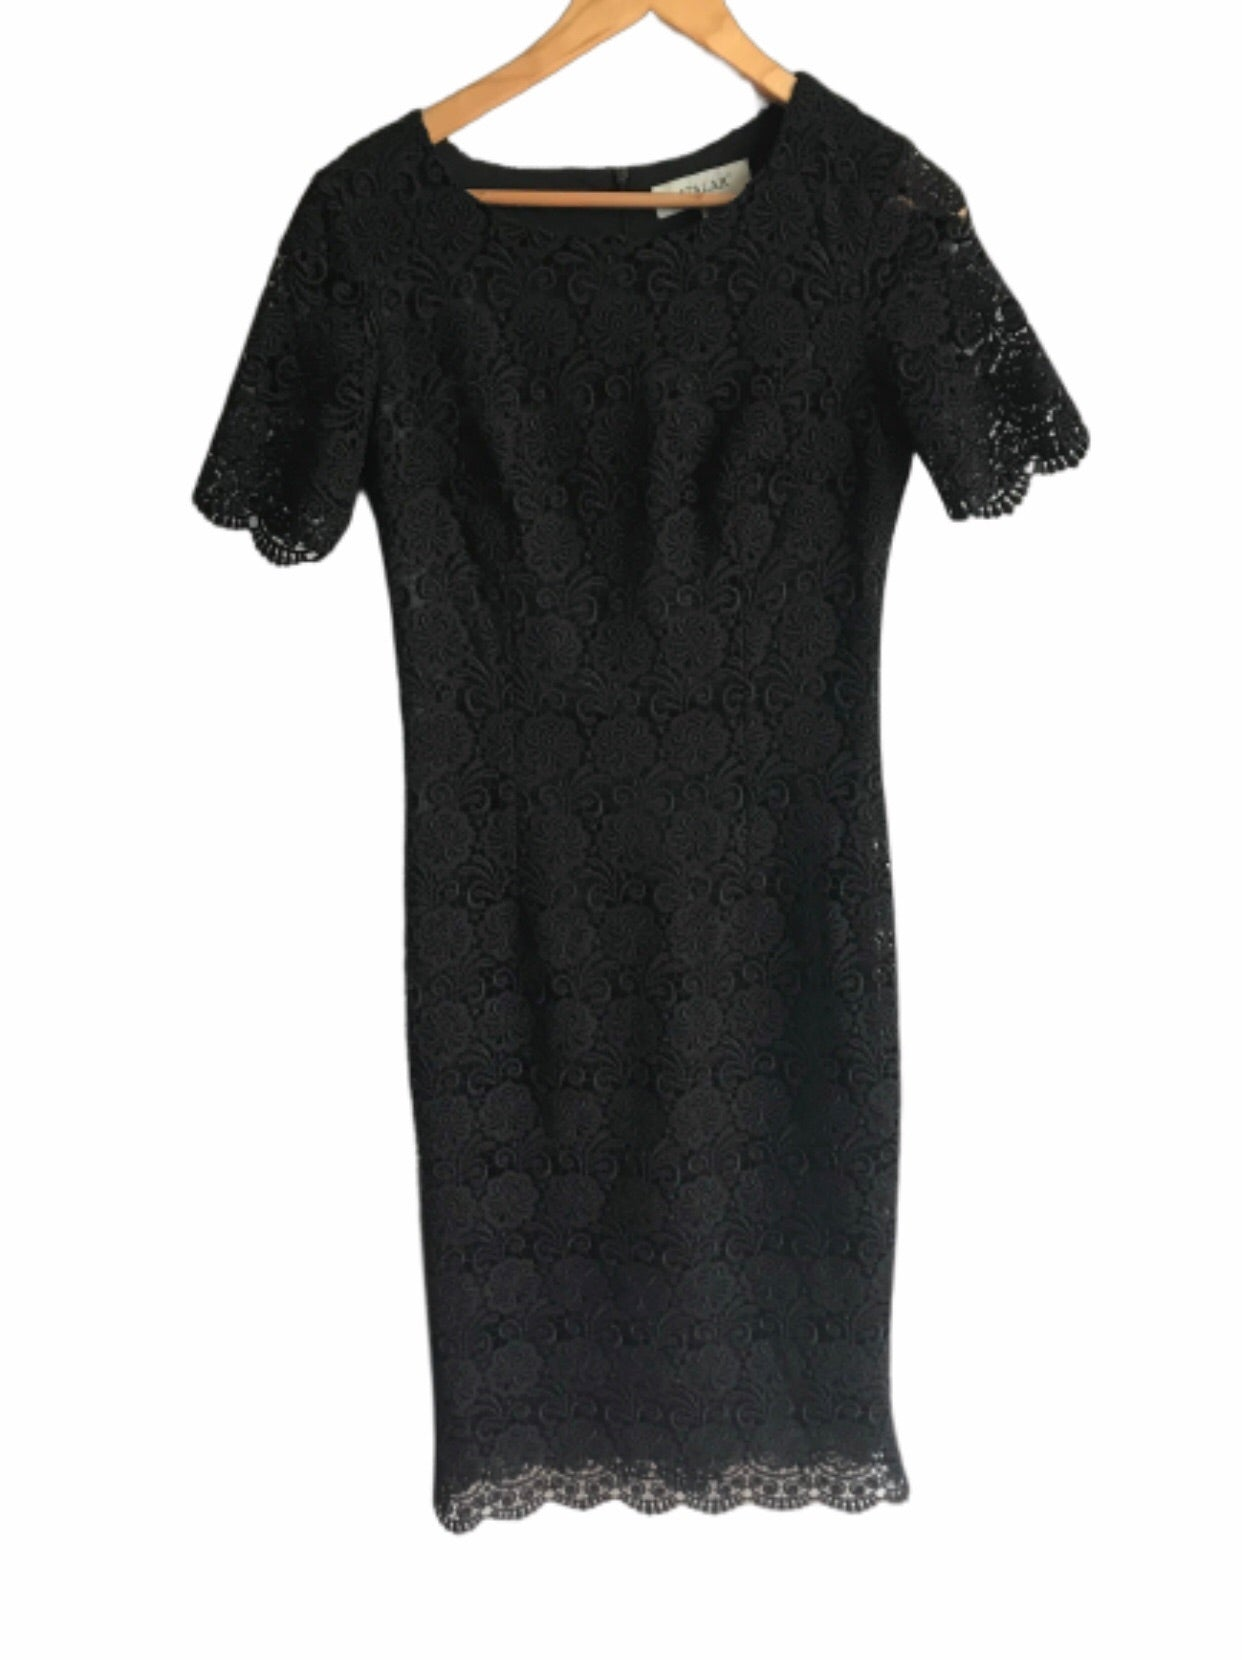 Robe noire en broderie anglaise